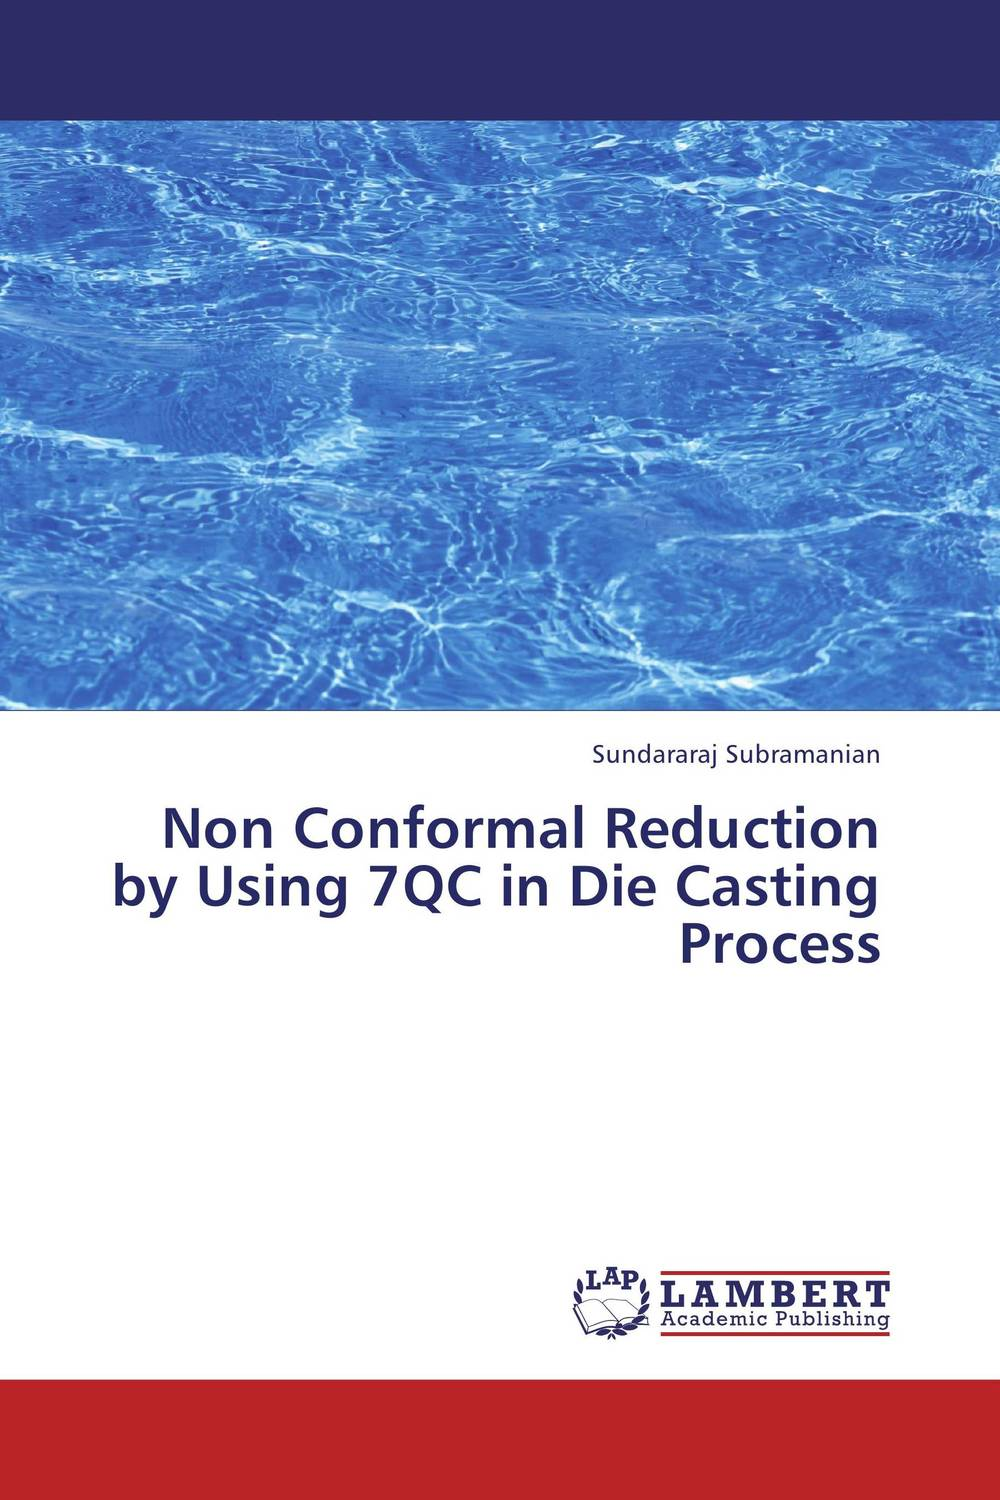 Non Conformal Reduction by Using 7QC in Die Casting Process